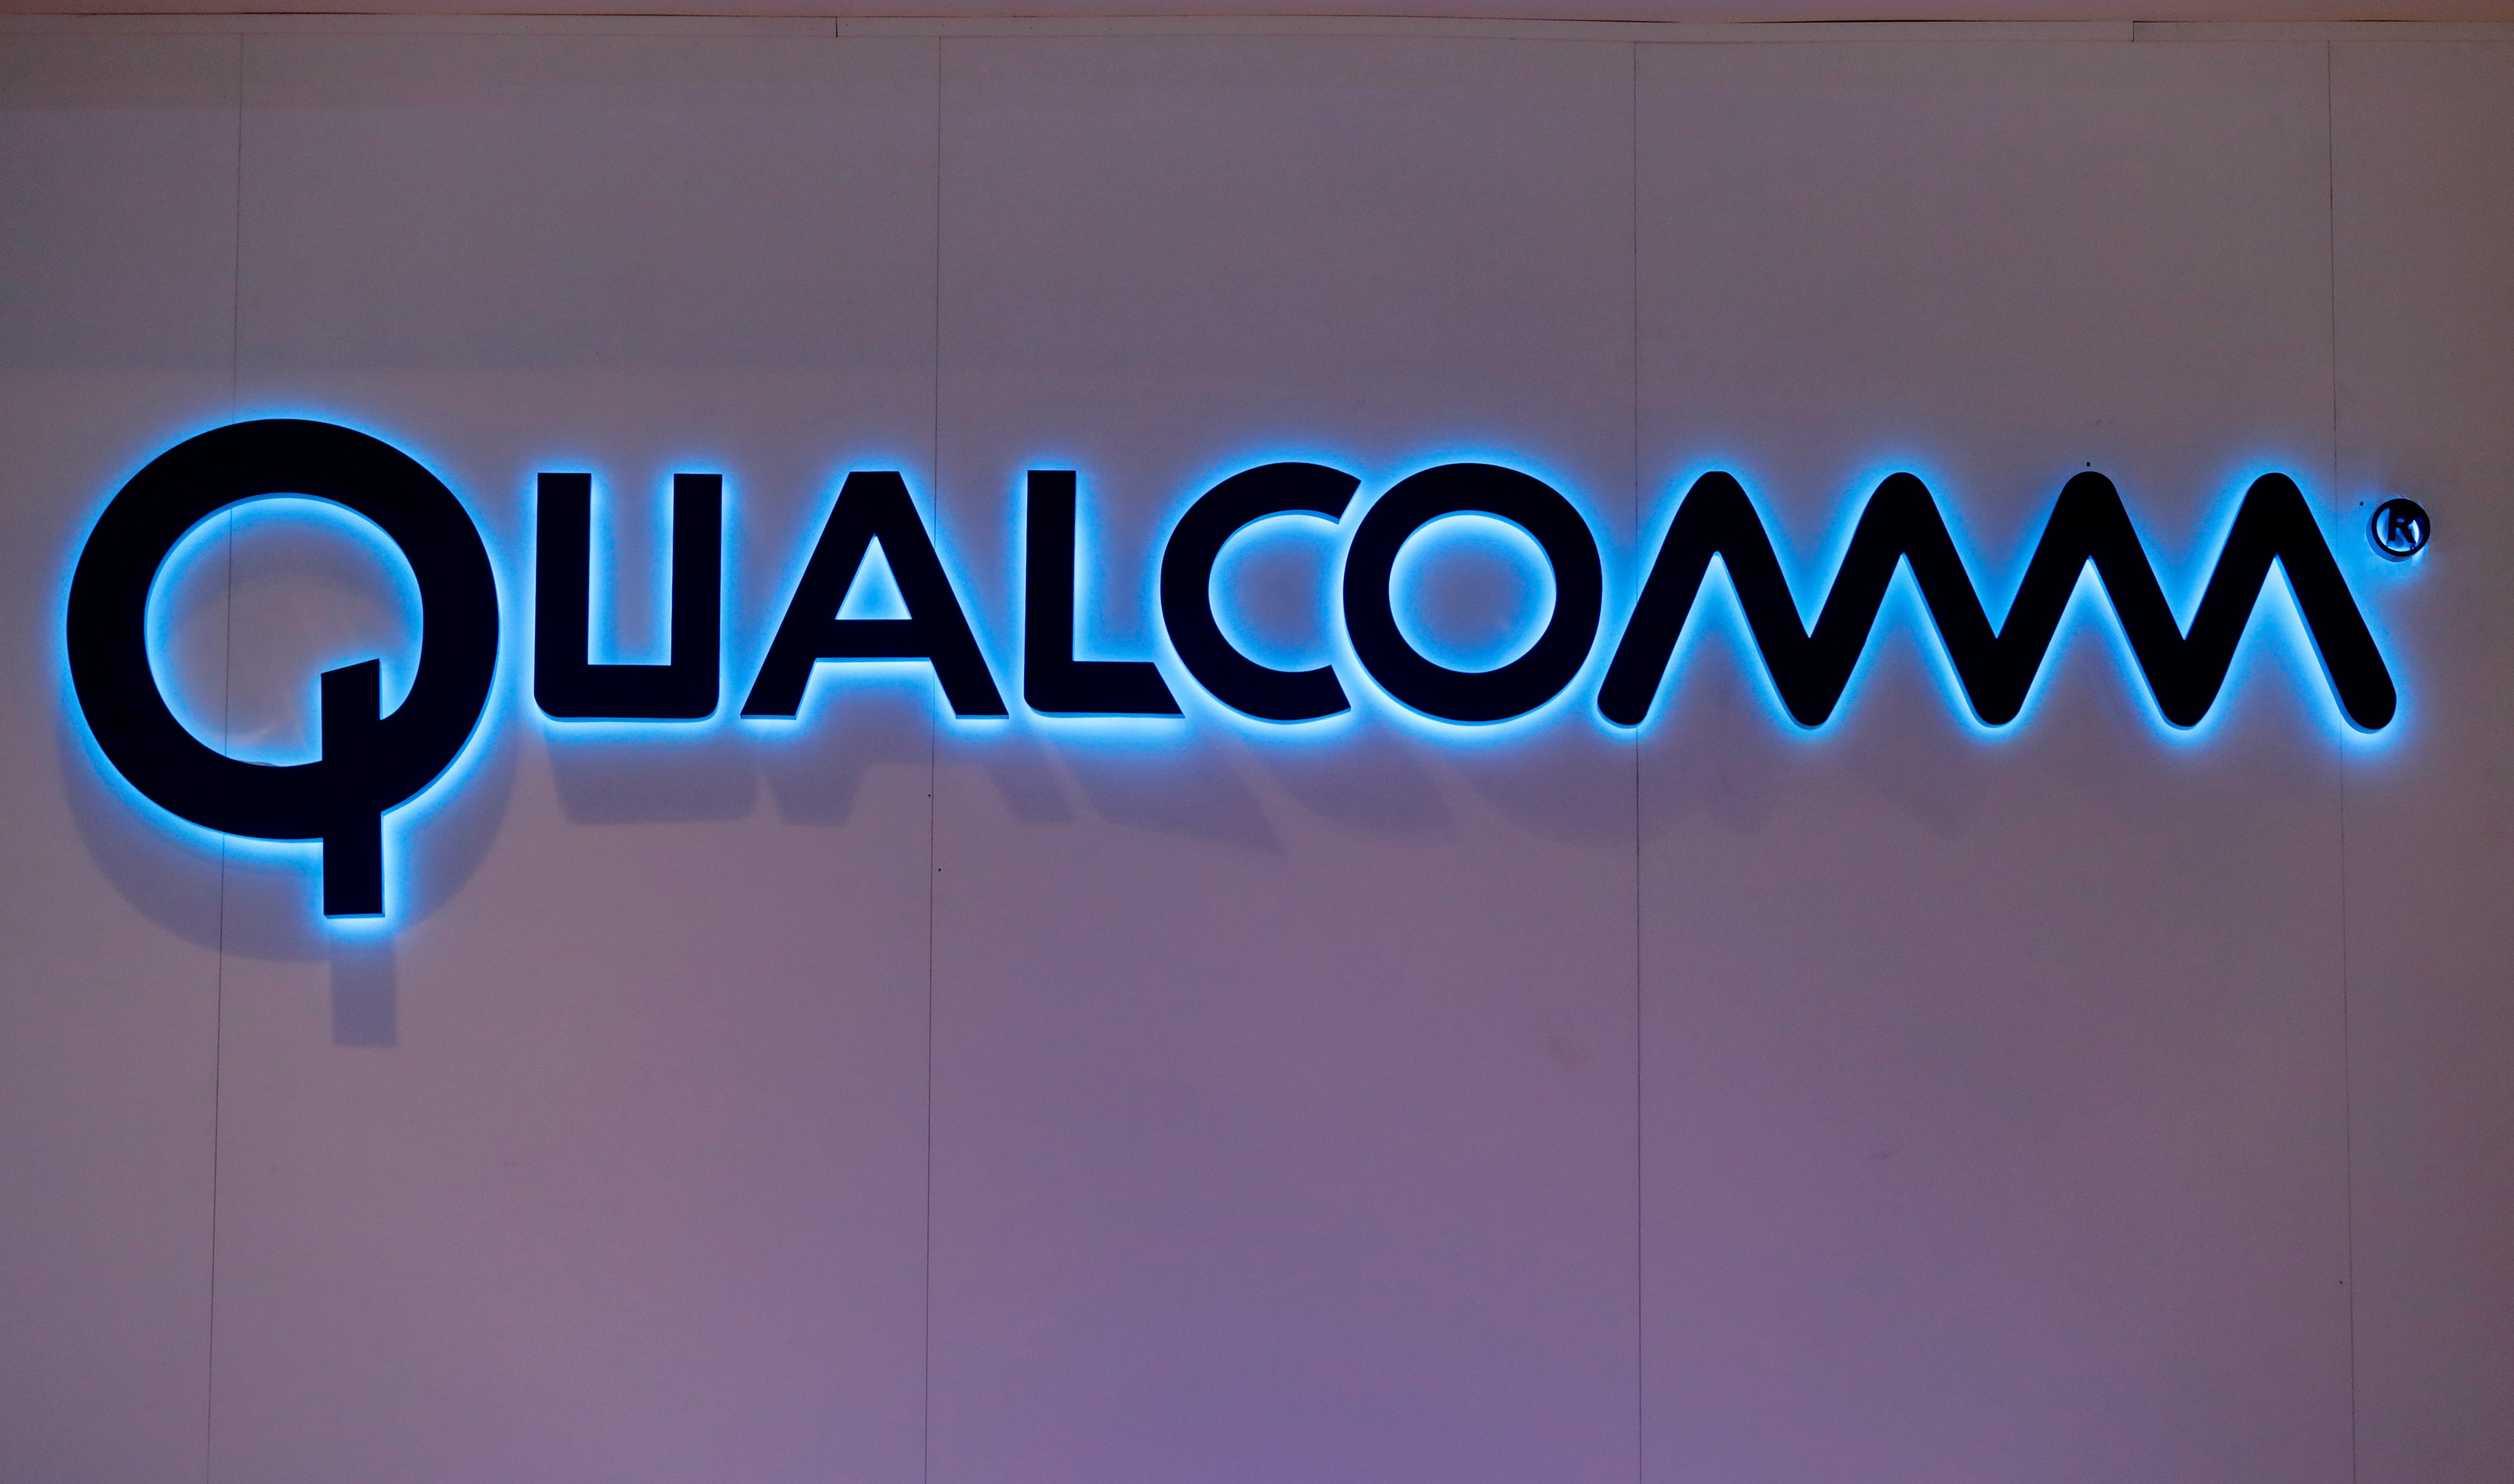 Qualcomm's logo is seen during Mobile World Congress in Barcelona, Spain, February 28, 2017. REUTERS/Eric Gaillard/File Photo